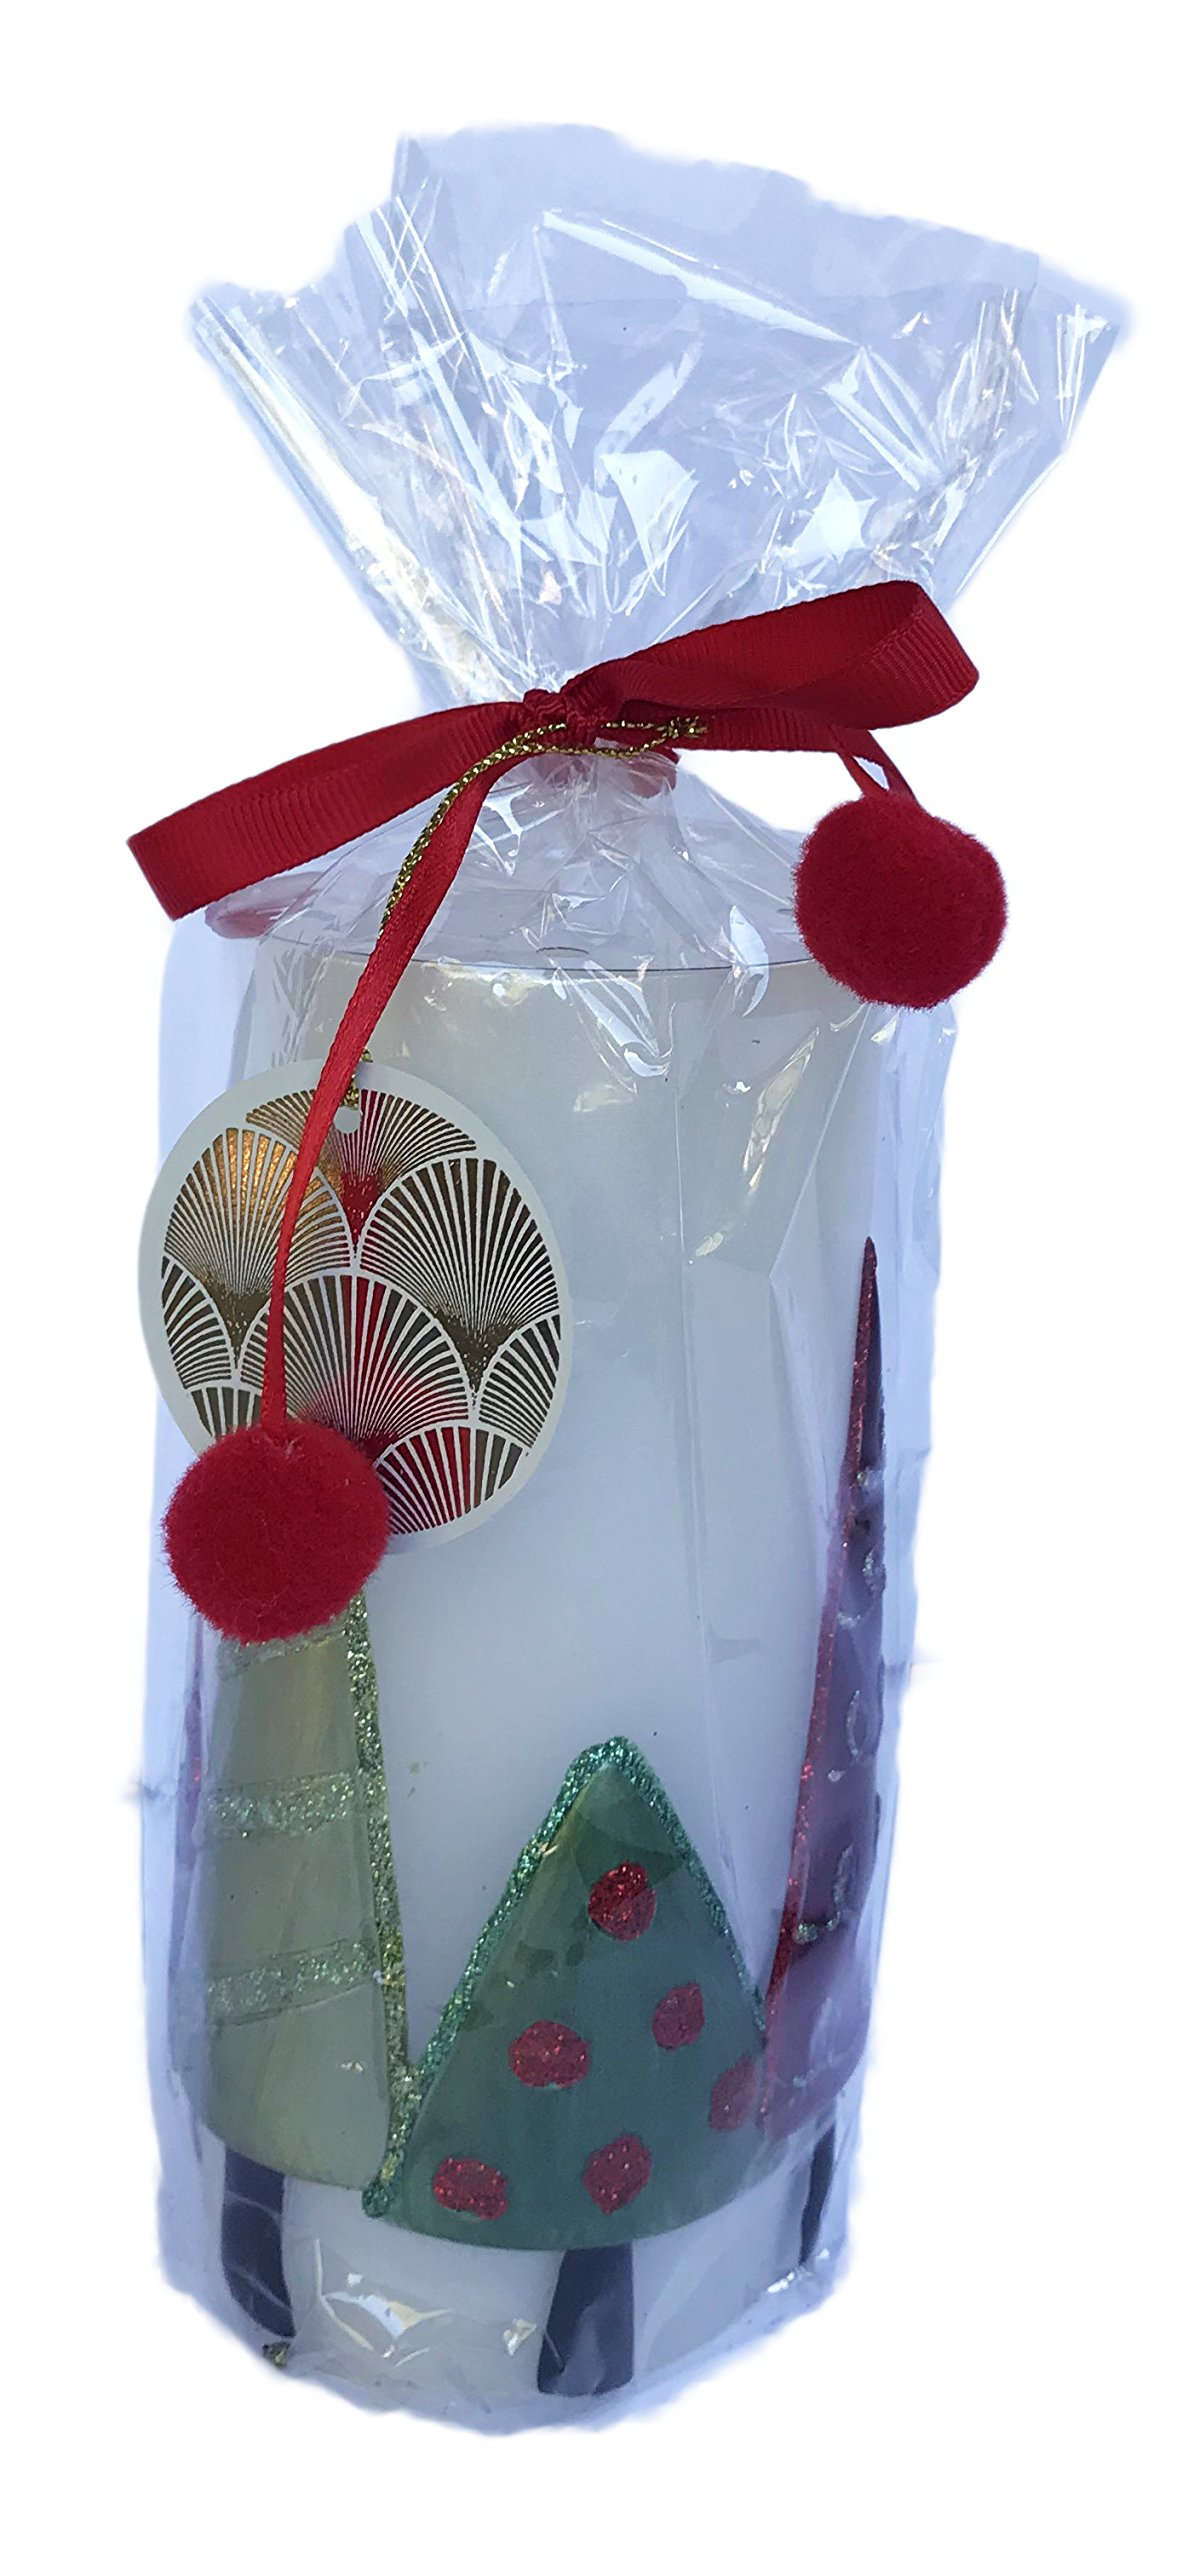 White Cylinder Christmas Candle with Green and Red Embellished Trees 6'' High x 3'' Wide